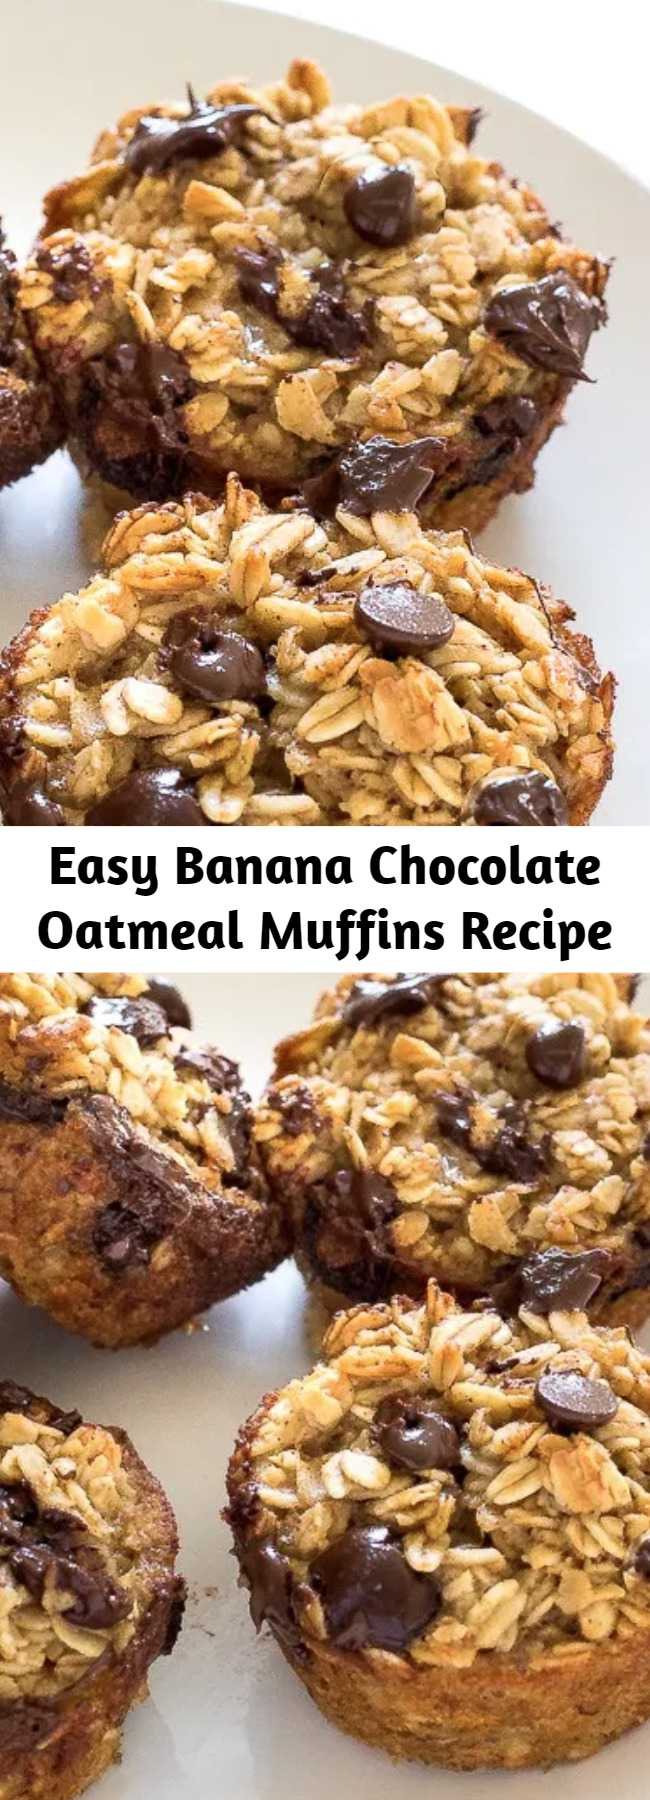 Easy Banana Chocolate Oatmeal Muffins Recipe - Healthy Banana Chocolate Chip Oatmeal Muffins. Made with honey, oats, bananas, coconut oil and chocolate chips! A freezer friendly breakfast or snack!